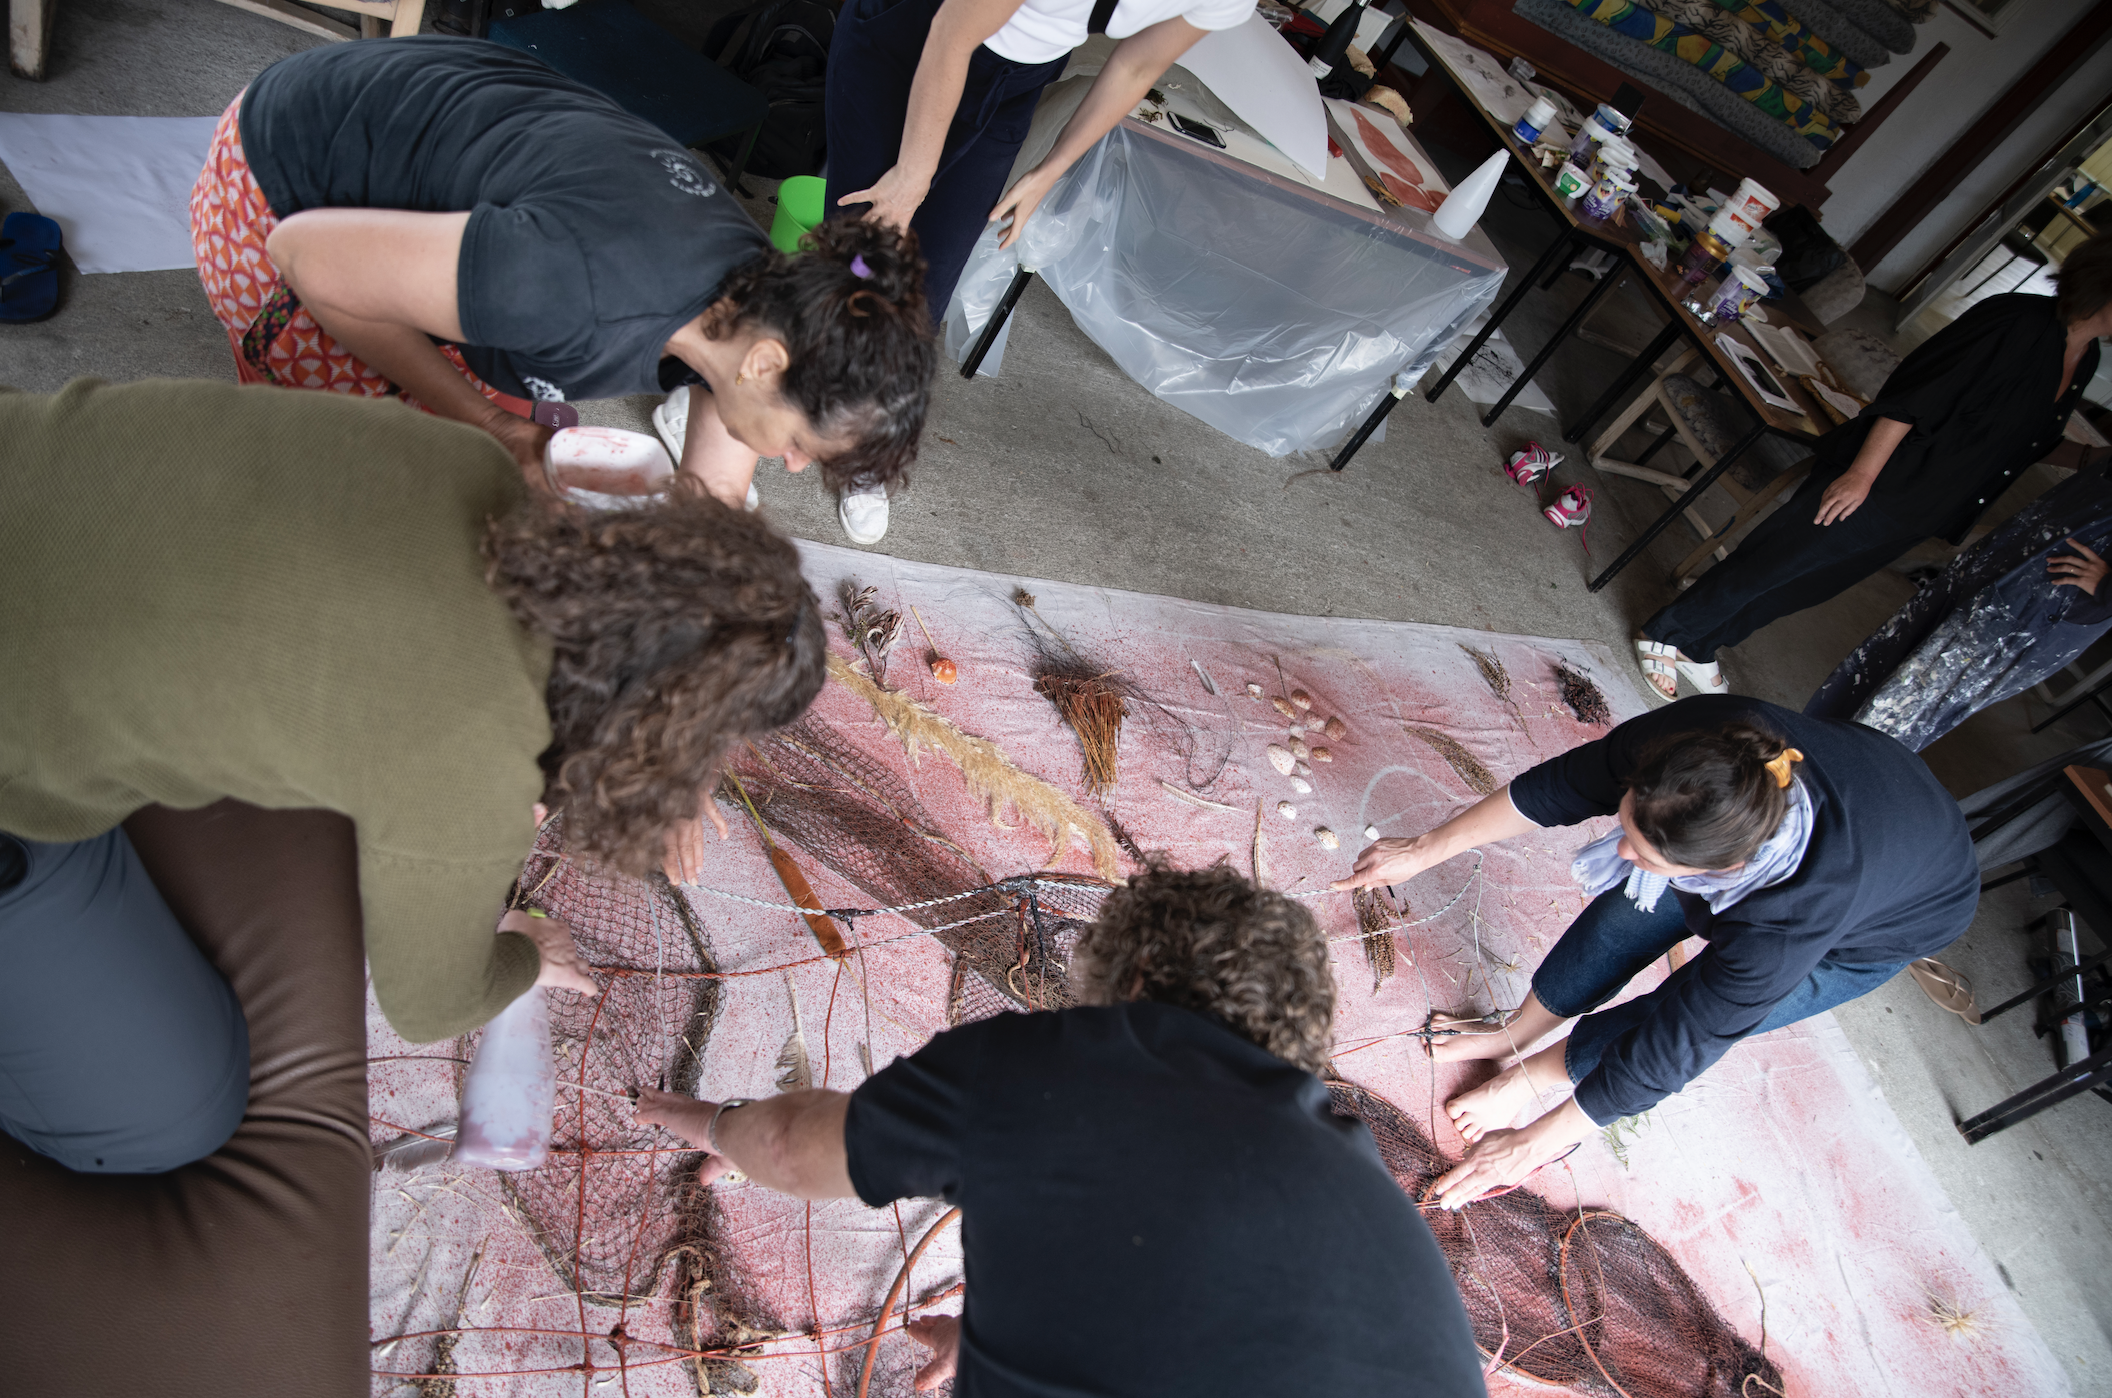 Artists working collaboratively with found items from the land at Kuku wānanga, Feb 2019. Read more  here .  Photograph by Jonathan Kay, 2019.